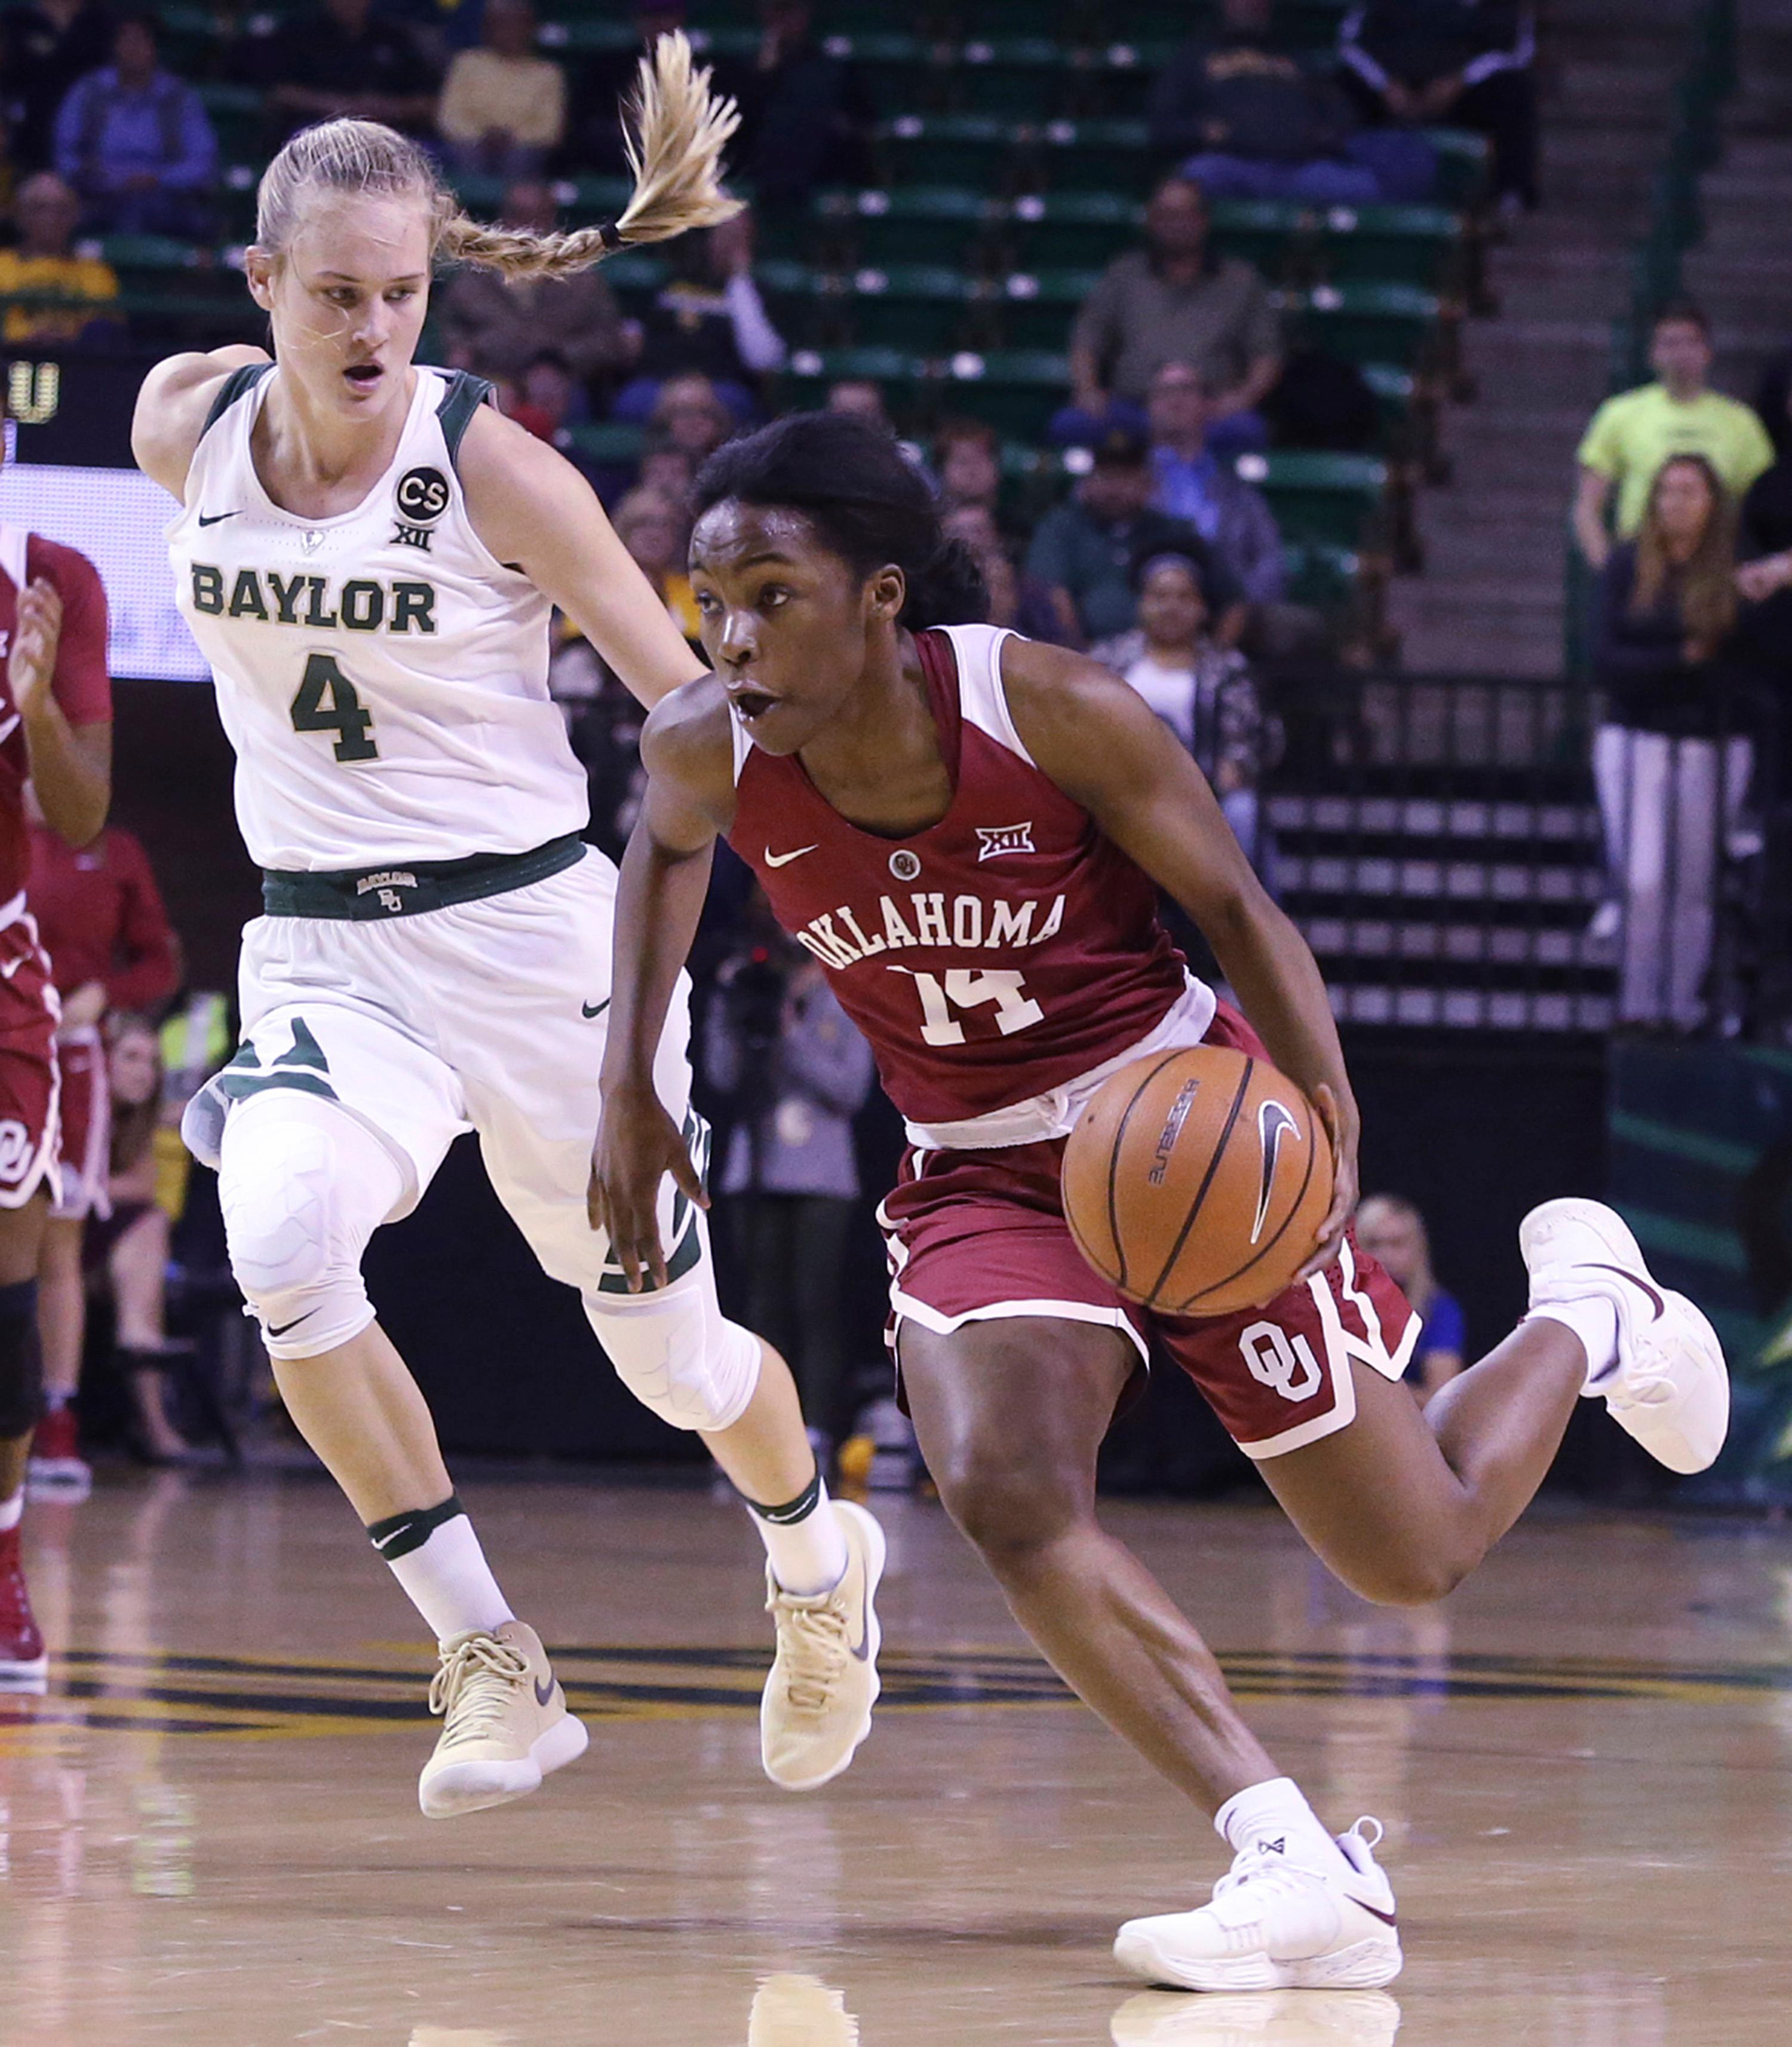 Oklahoma guard Shaina Pellington, right, drives the ball up court against Baylor guard Kristy Wallace, left, during the first half of an NCAA college basketball game, Monday, Feb. 5, 2018, in Waco, Texas. (AP Photo/Jerry Larson)